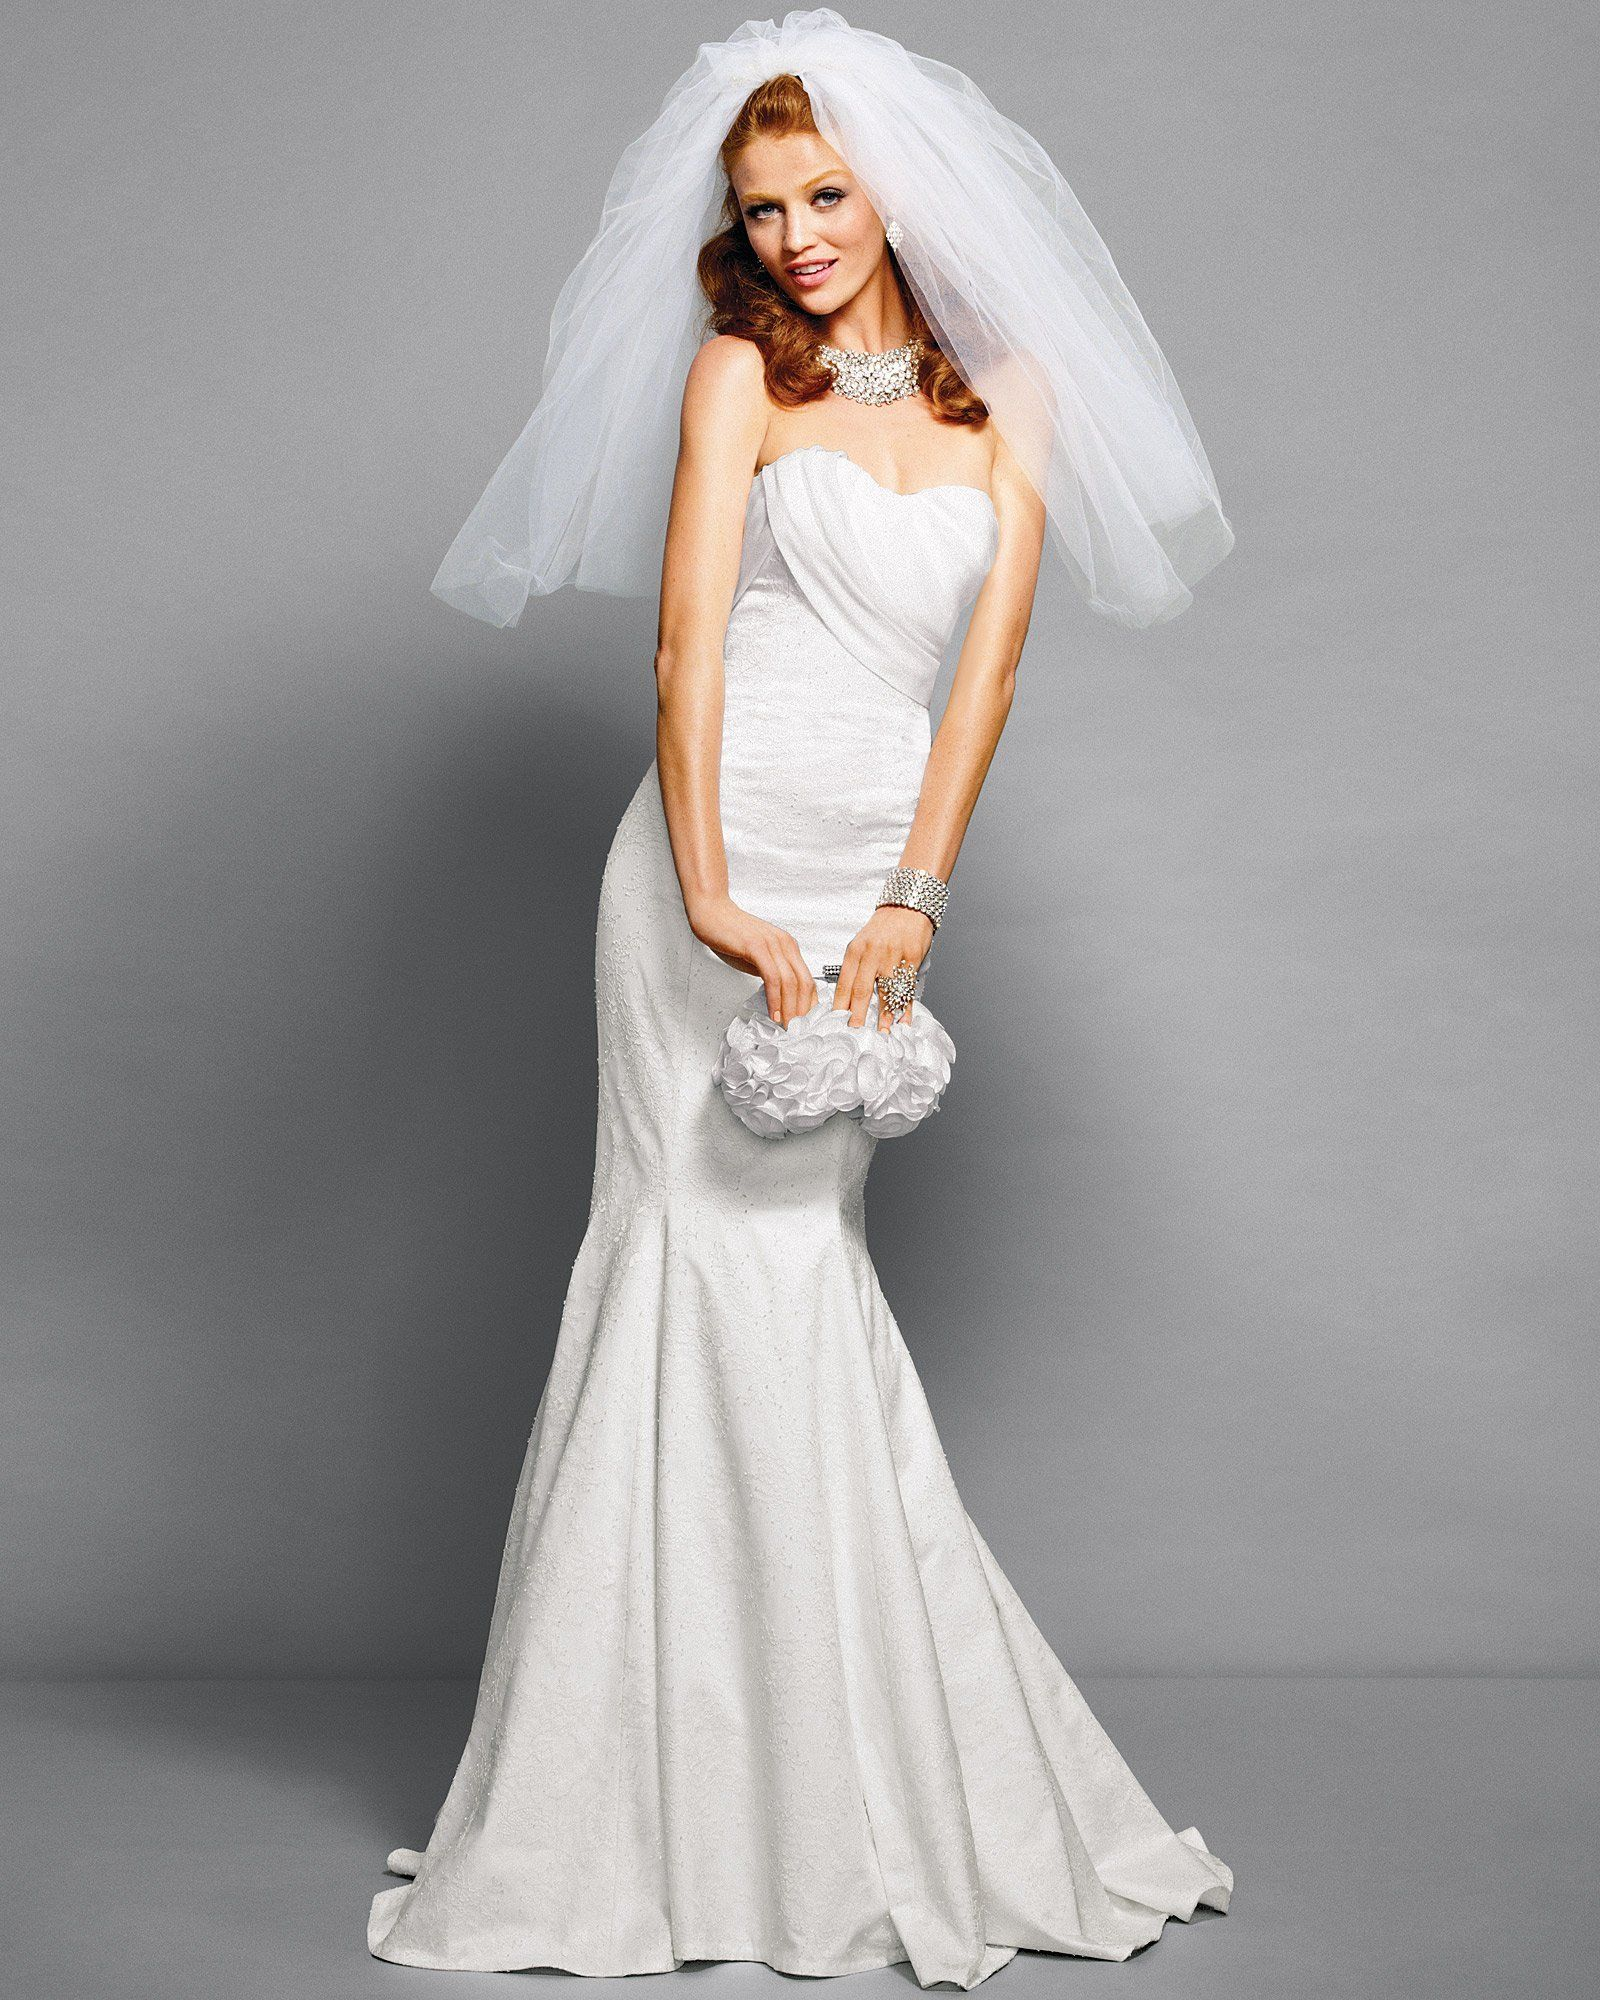 Breathtaking drape top lace mermaid wedding dress designed by rami